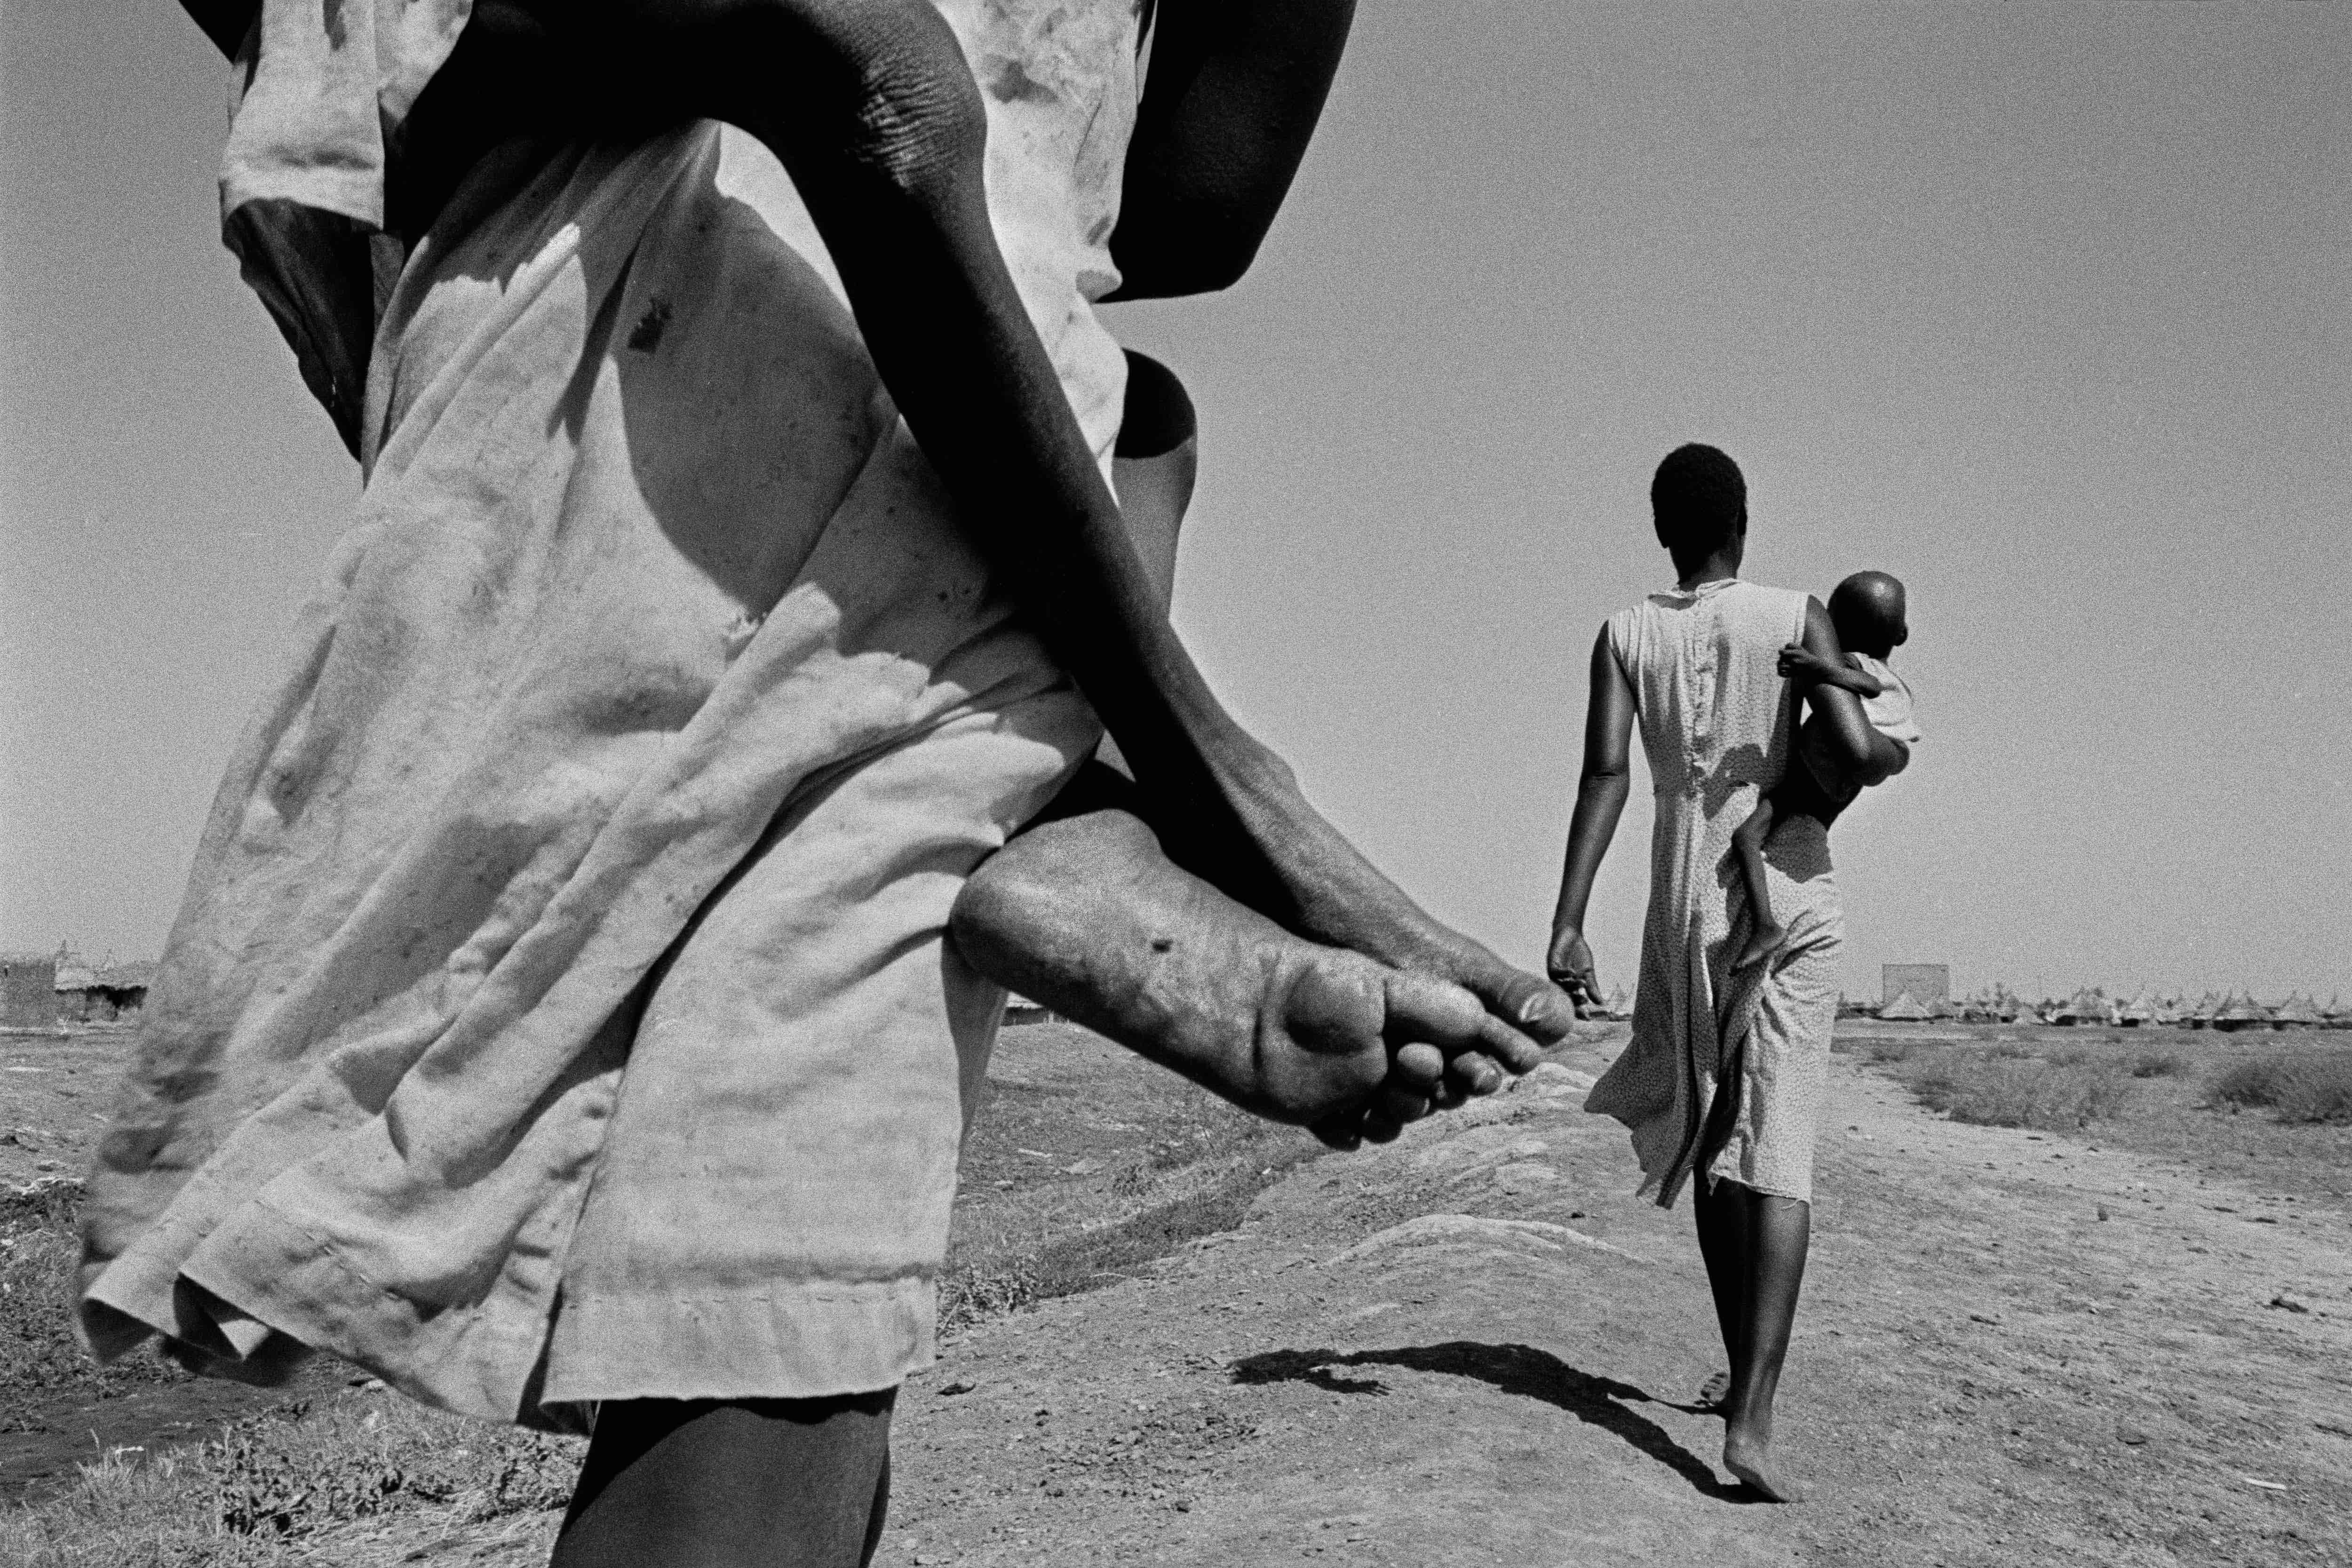 South Sudanese displaced. Most of the malnourished children are too weak to walk the 300m to the feeding centre and have to be carried there. Kosti. Sudan. 1988. © John Vink/Magnum Photos